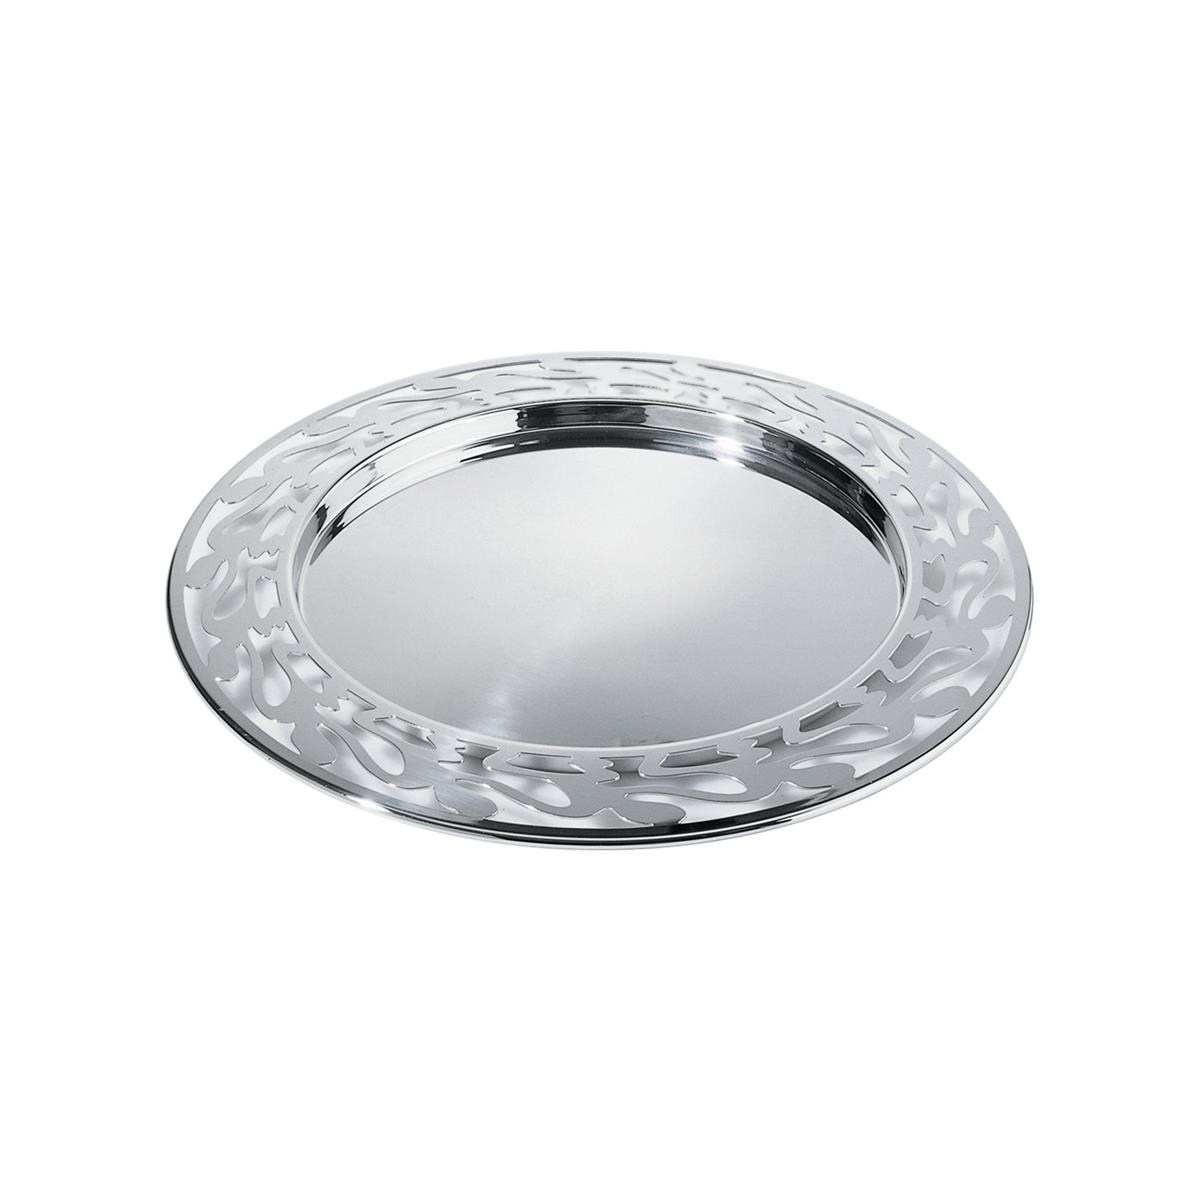 Alessi-Ethno Round tray with perforated edge in 18/10 stainless steel mirror polished